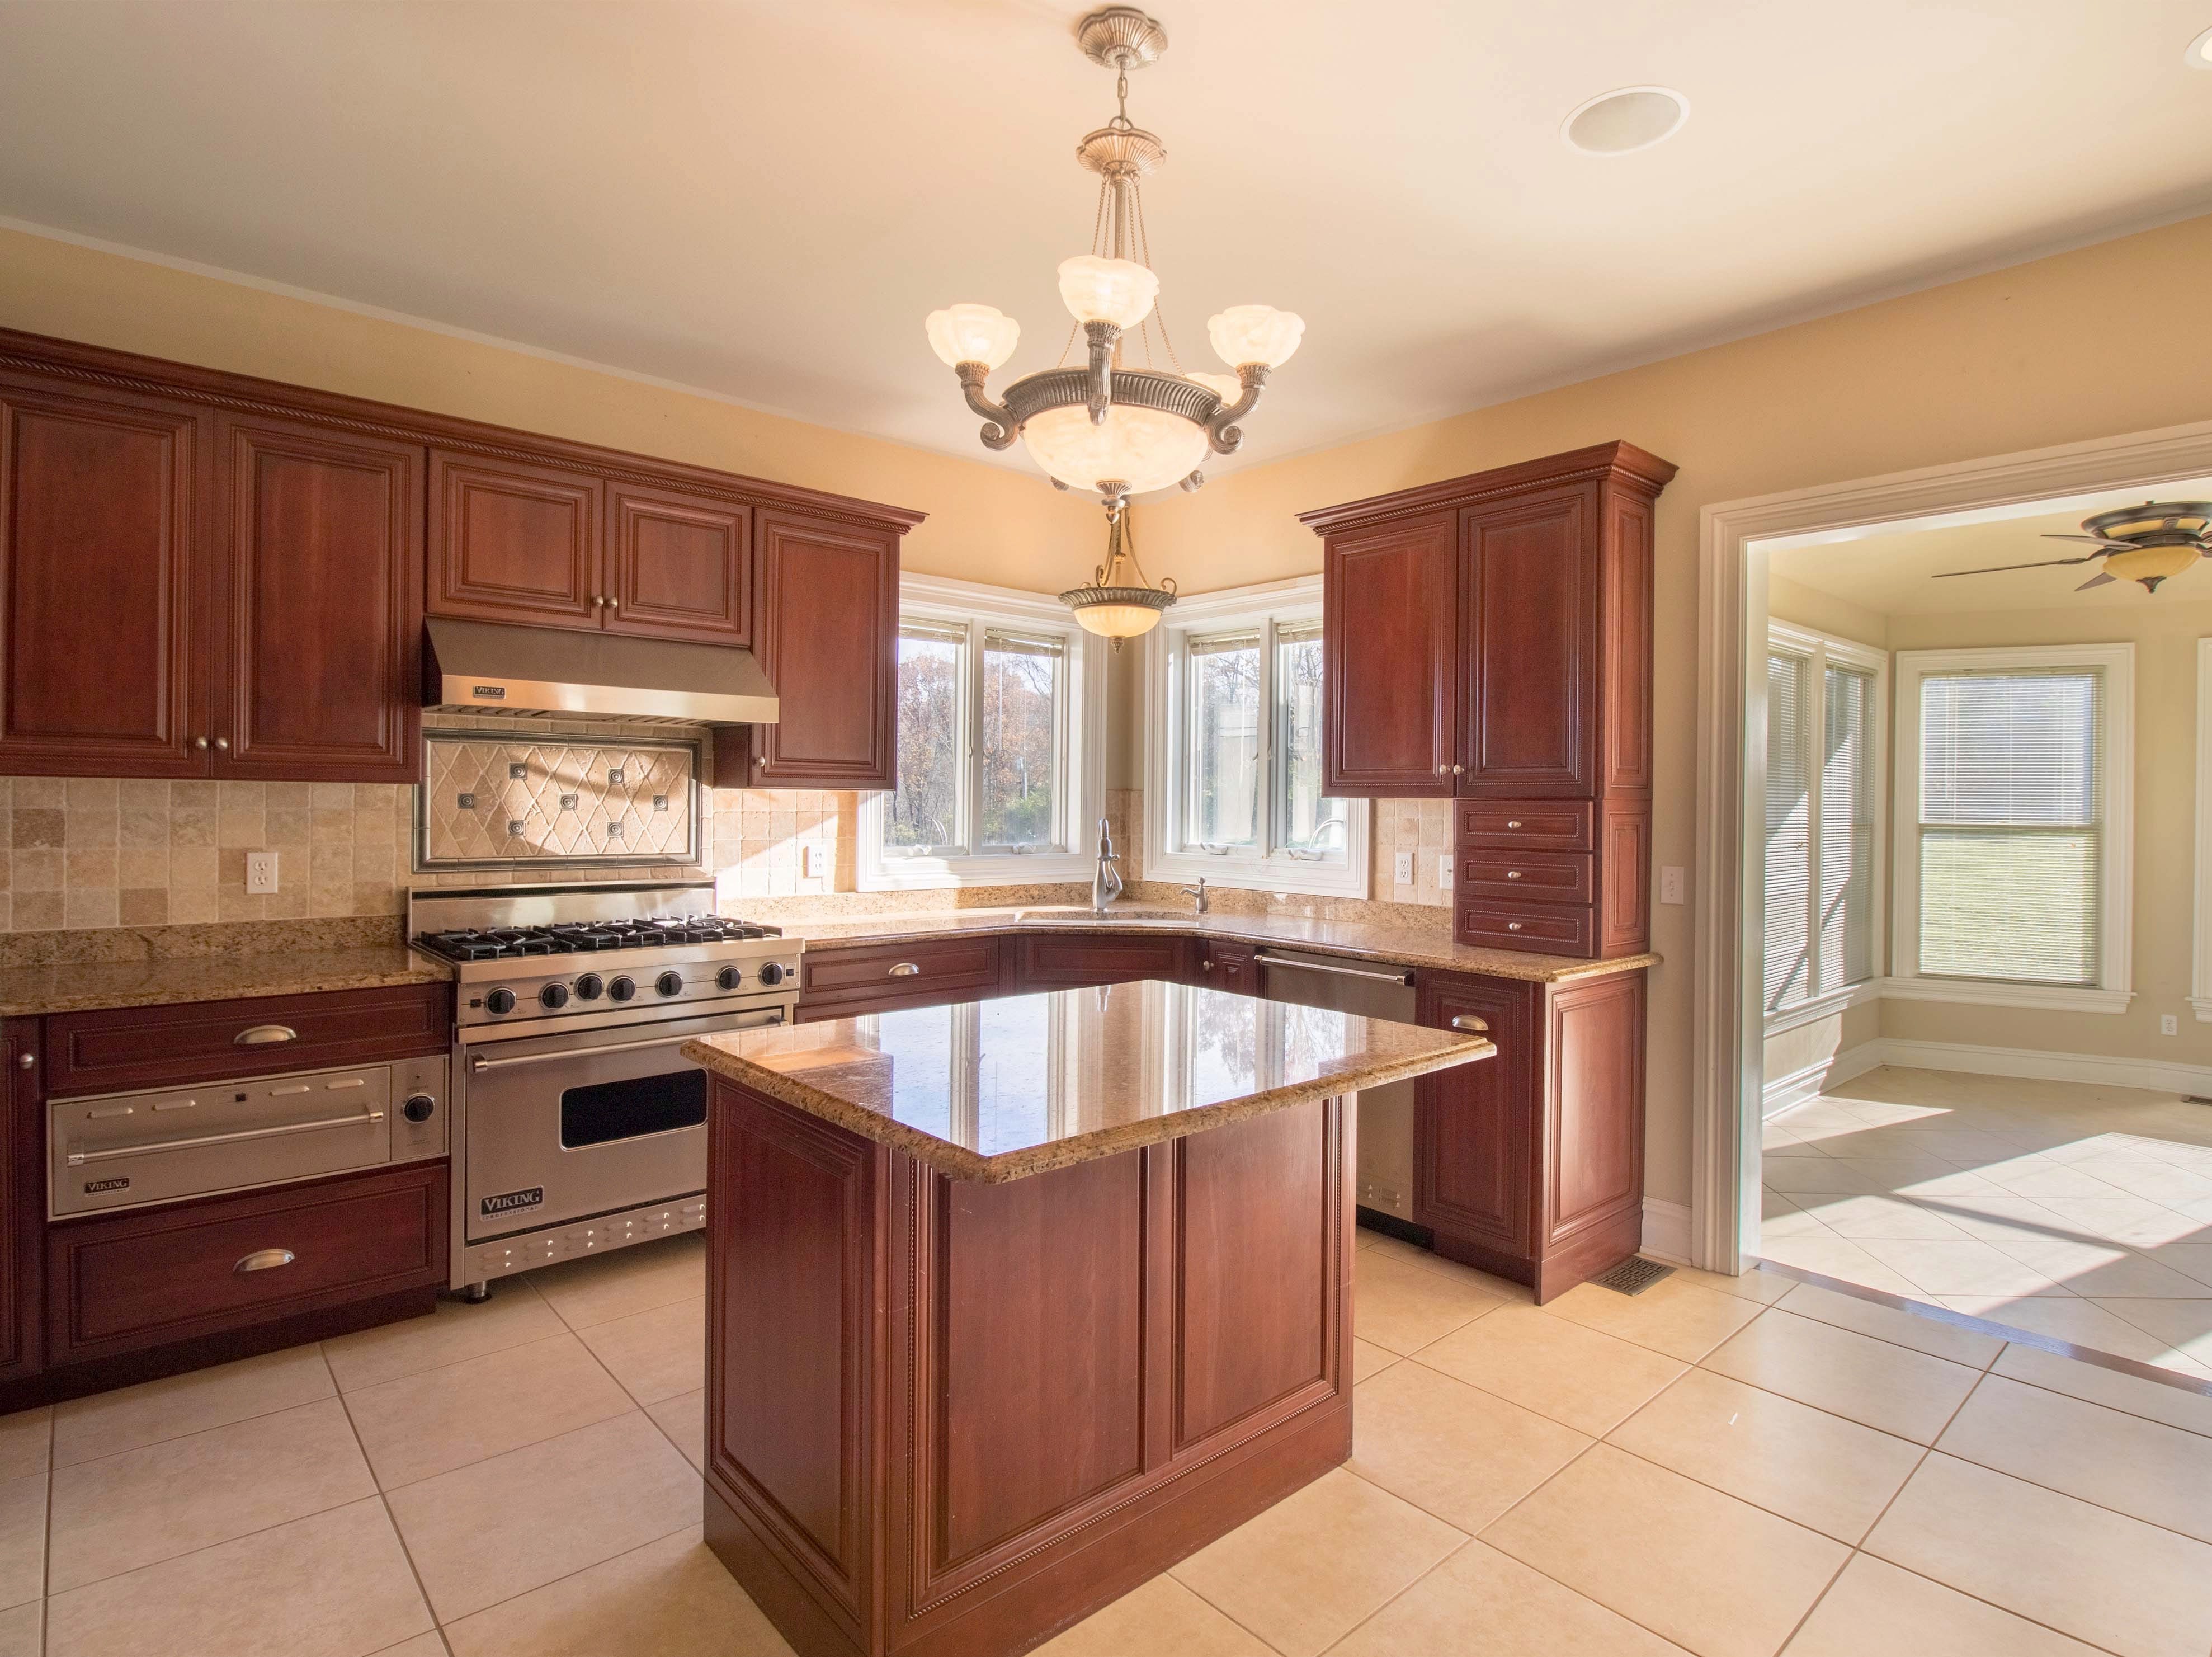 The kitchen has raised-panel cabinets with granite counters, a center island with a breakfast bar, pendant and recessed lights, stainless-steel appliances and ceramic-tile floors.